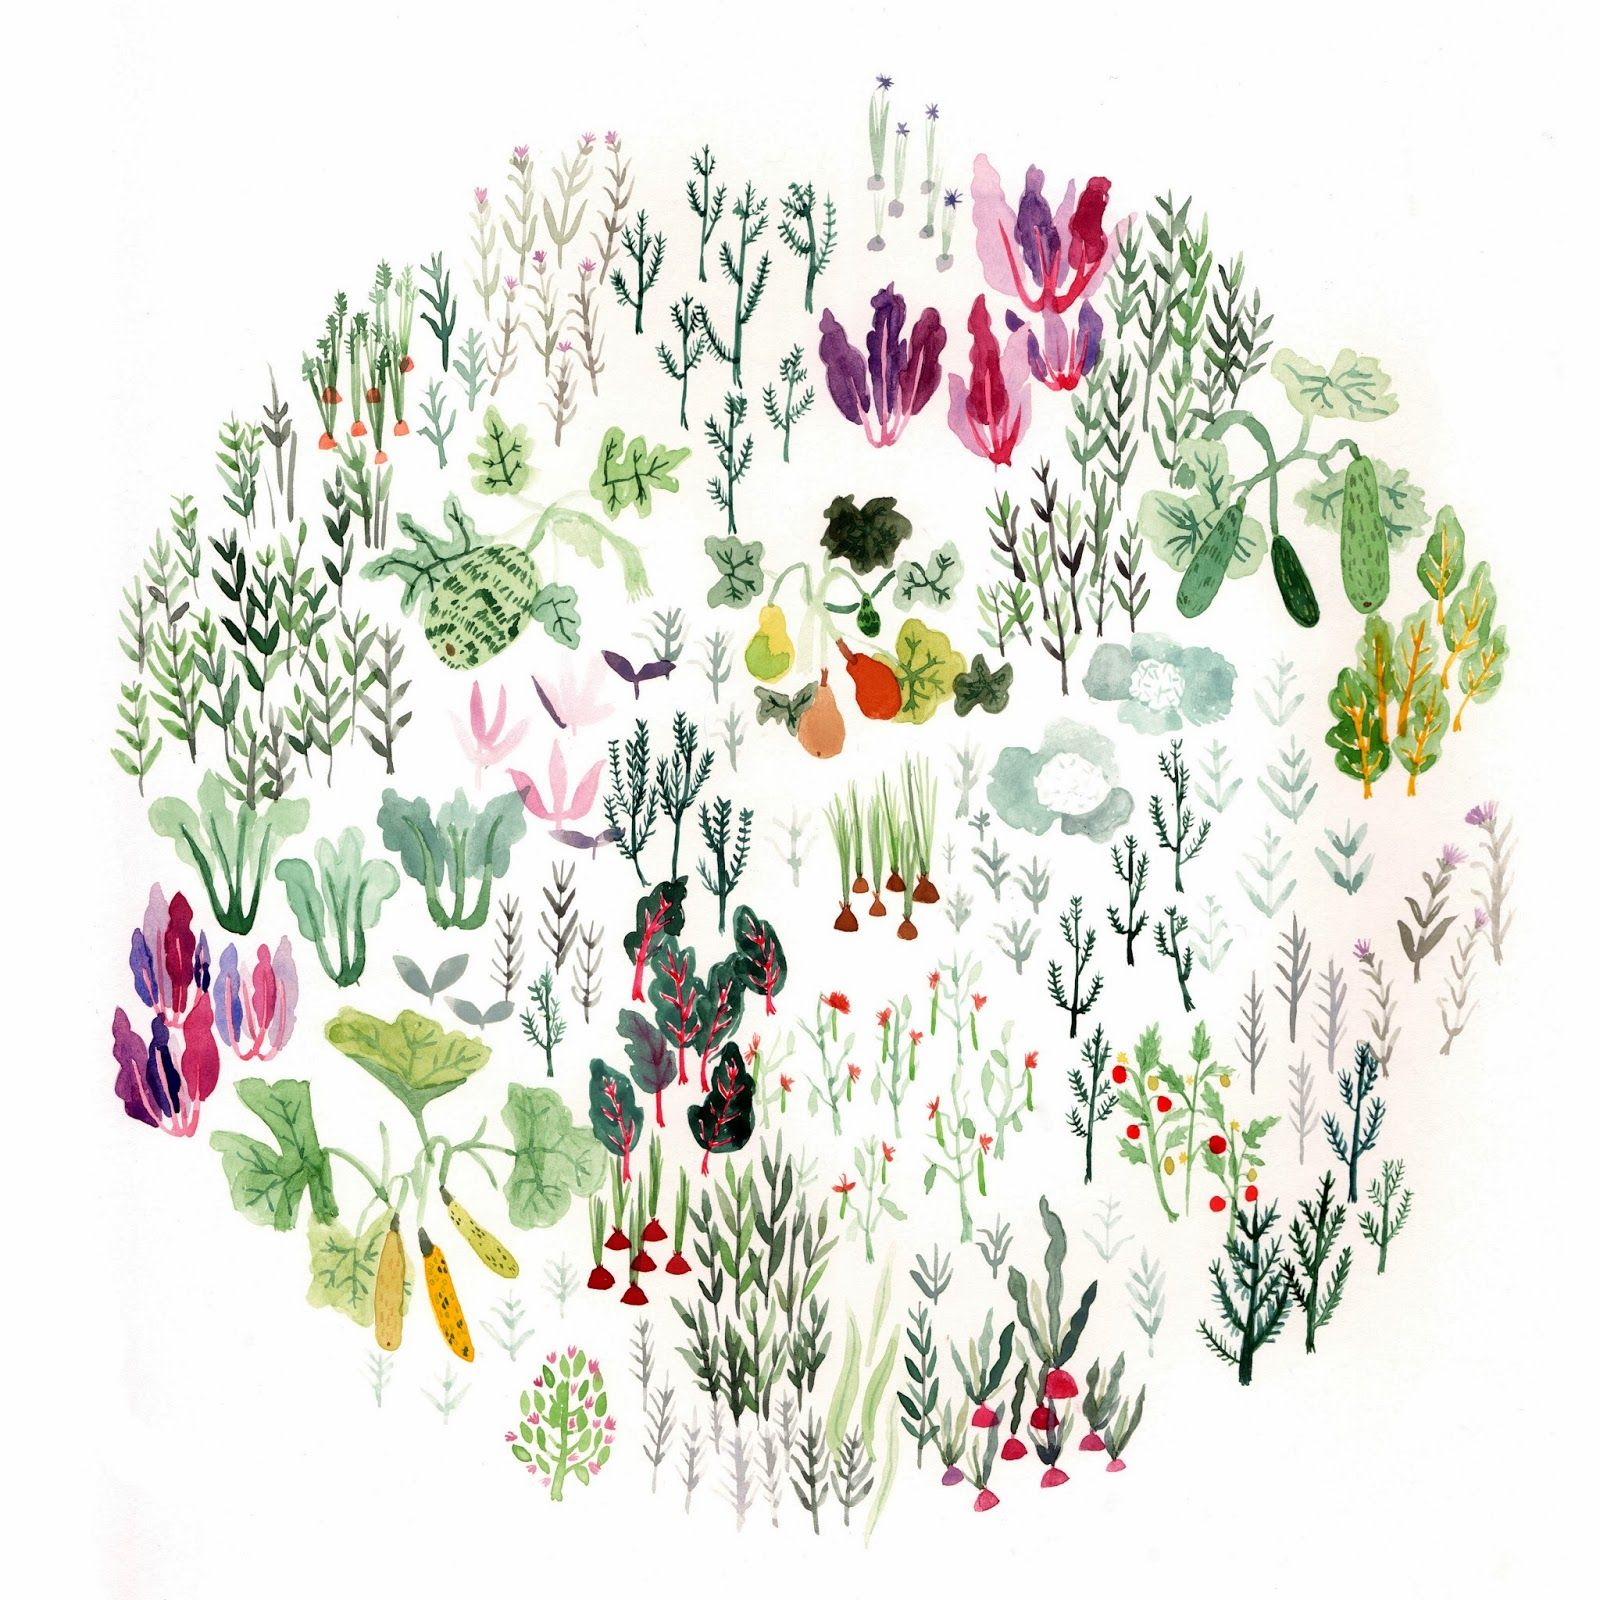 """Garden"", Watercolour, 2013 - Emily Watkins"